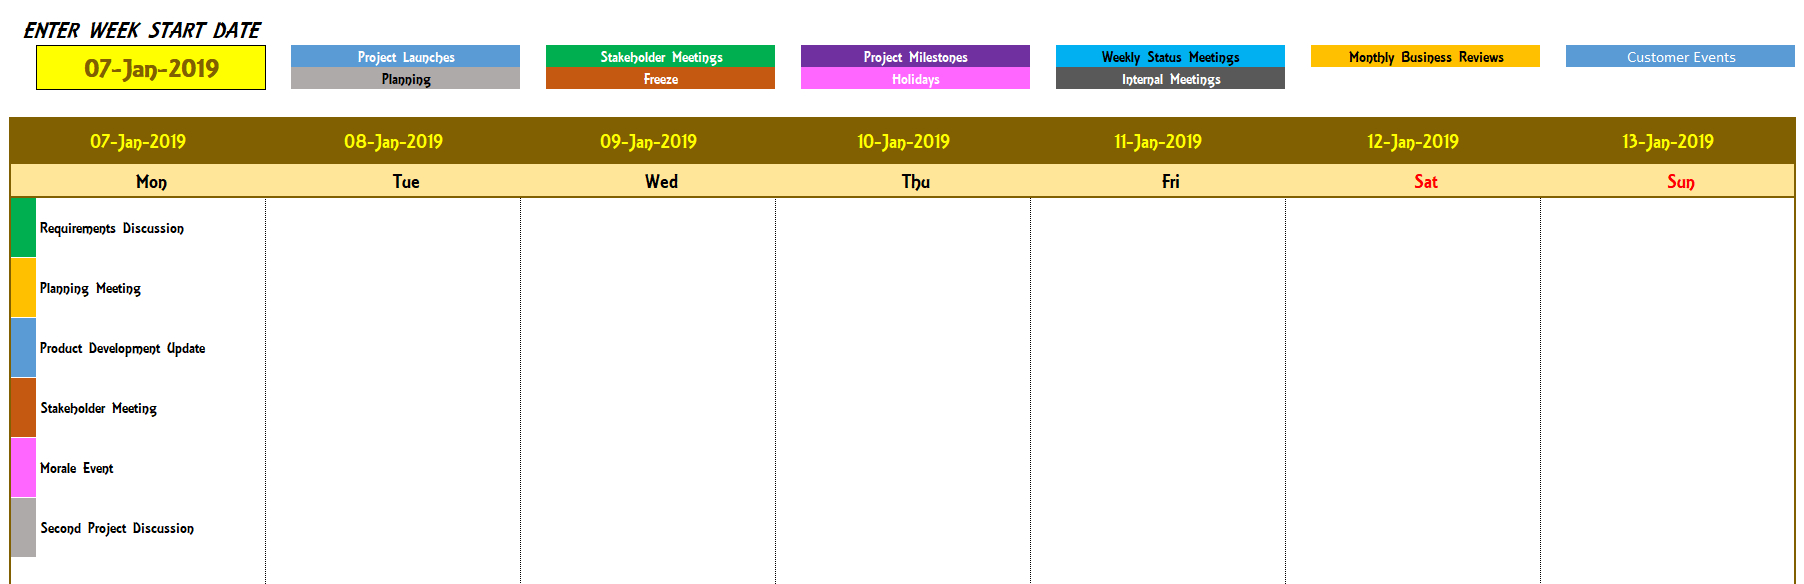 2020 Excel Calendar Template  Excel Calendar 2020 Or Any Year regarding Creating Recurring Events In Excel Calendar